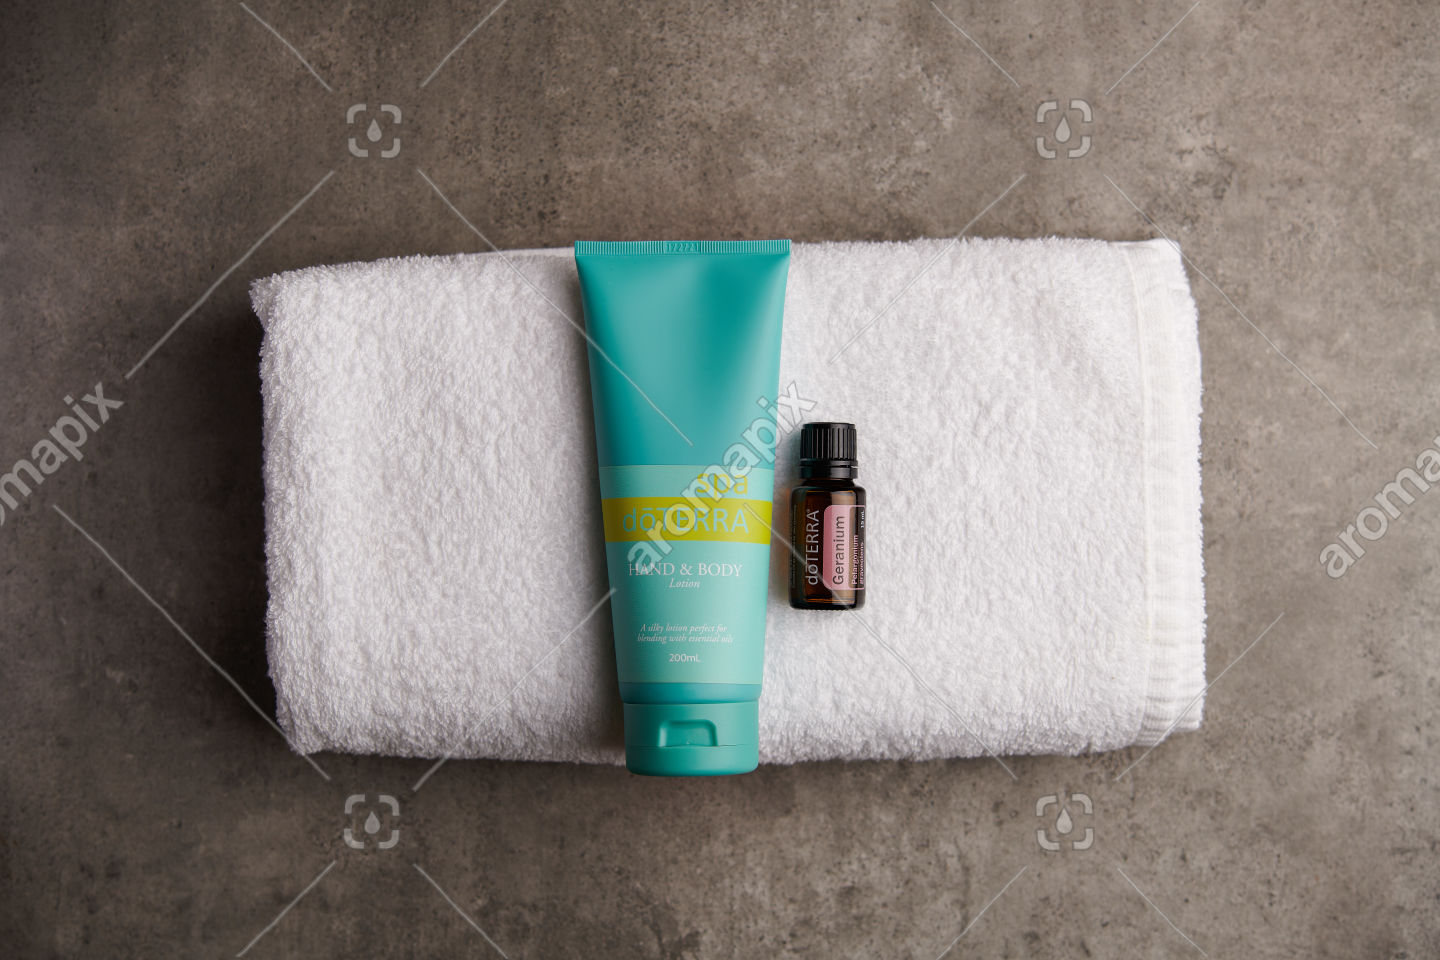 doTERRA Spa Hand and Body Lotion and Geranium essential oil on stone